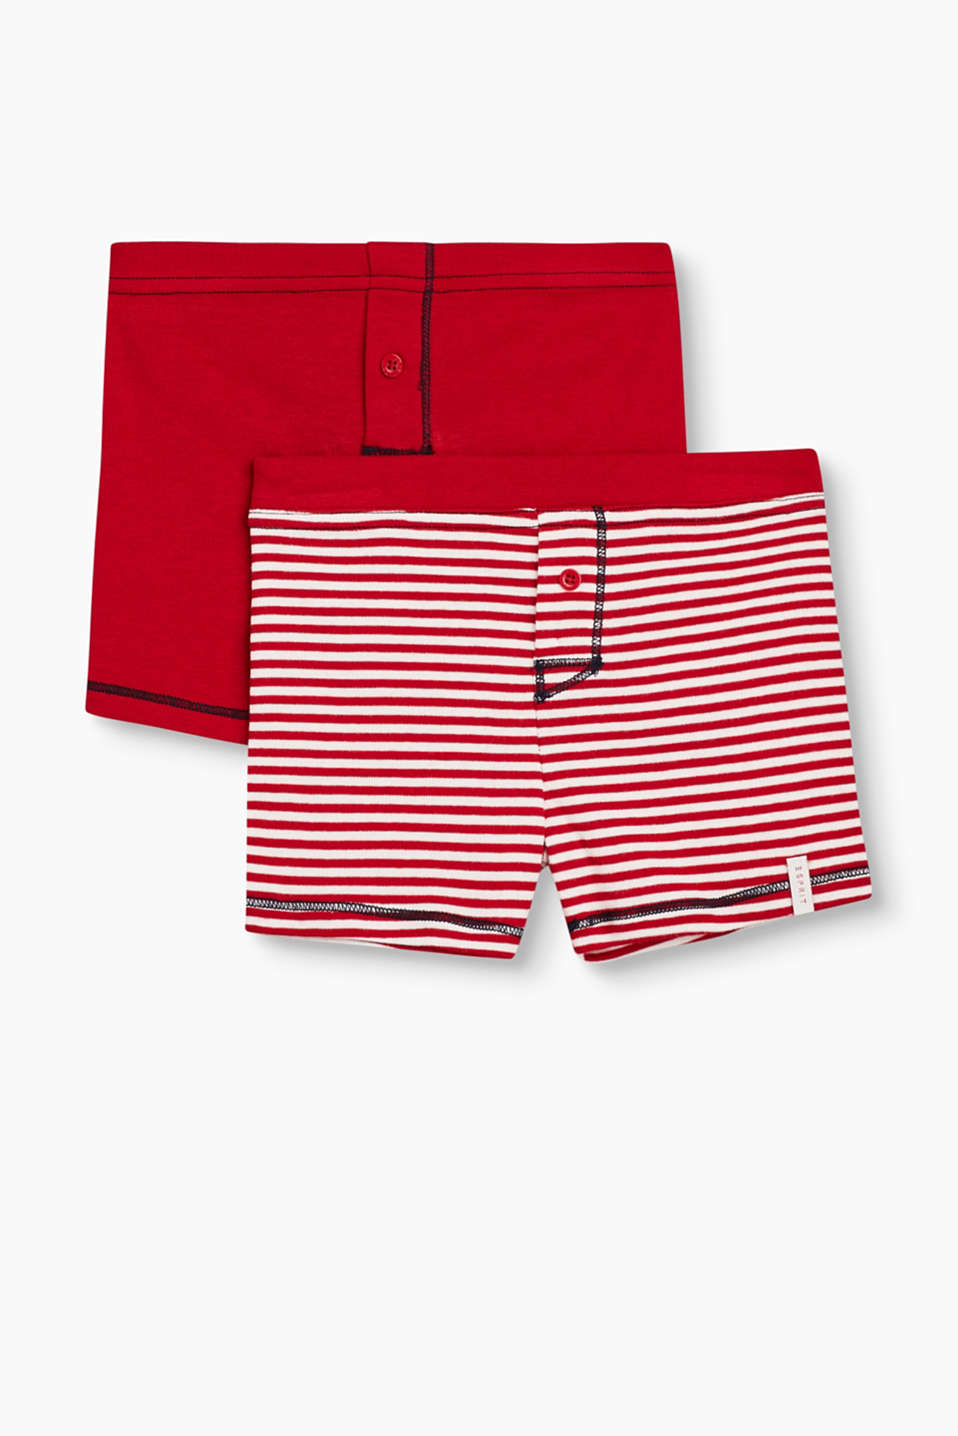 Super comfortable and sporty: soft cotton boxer shorts in a practical double pack